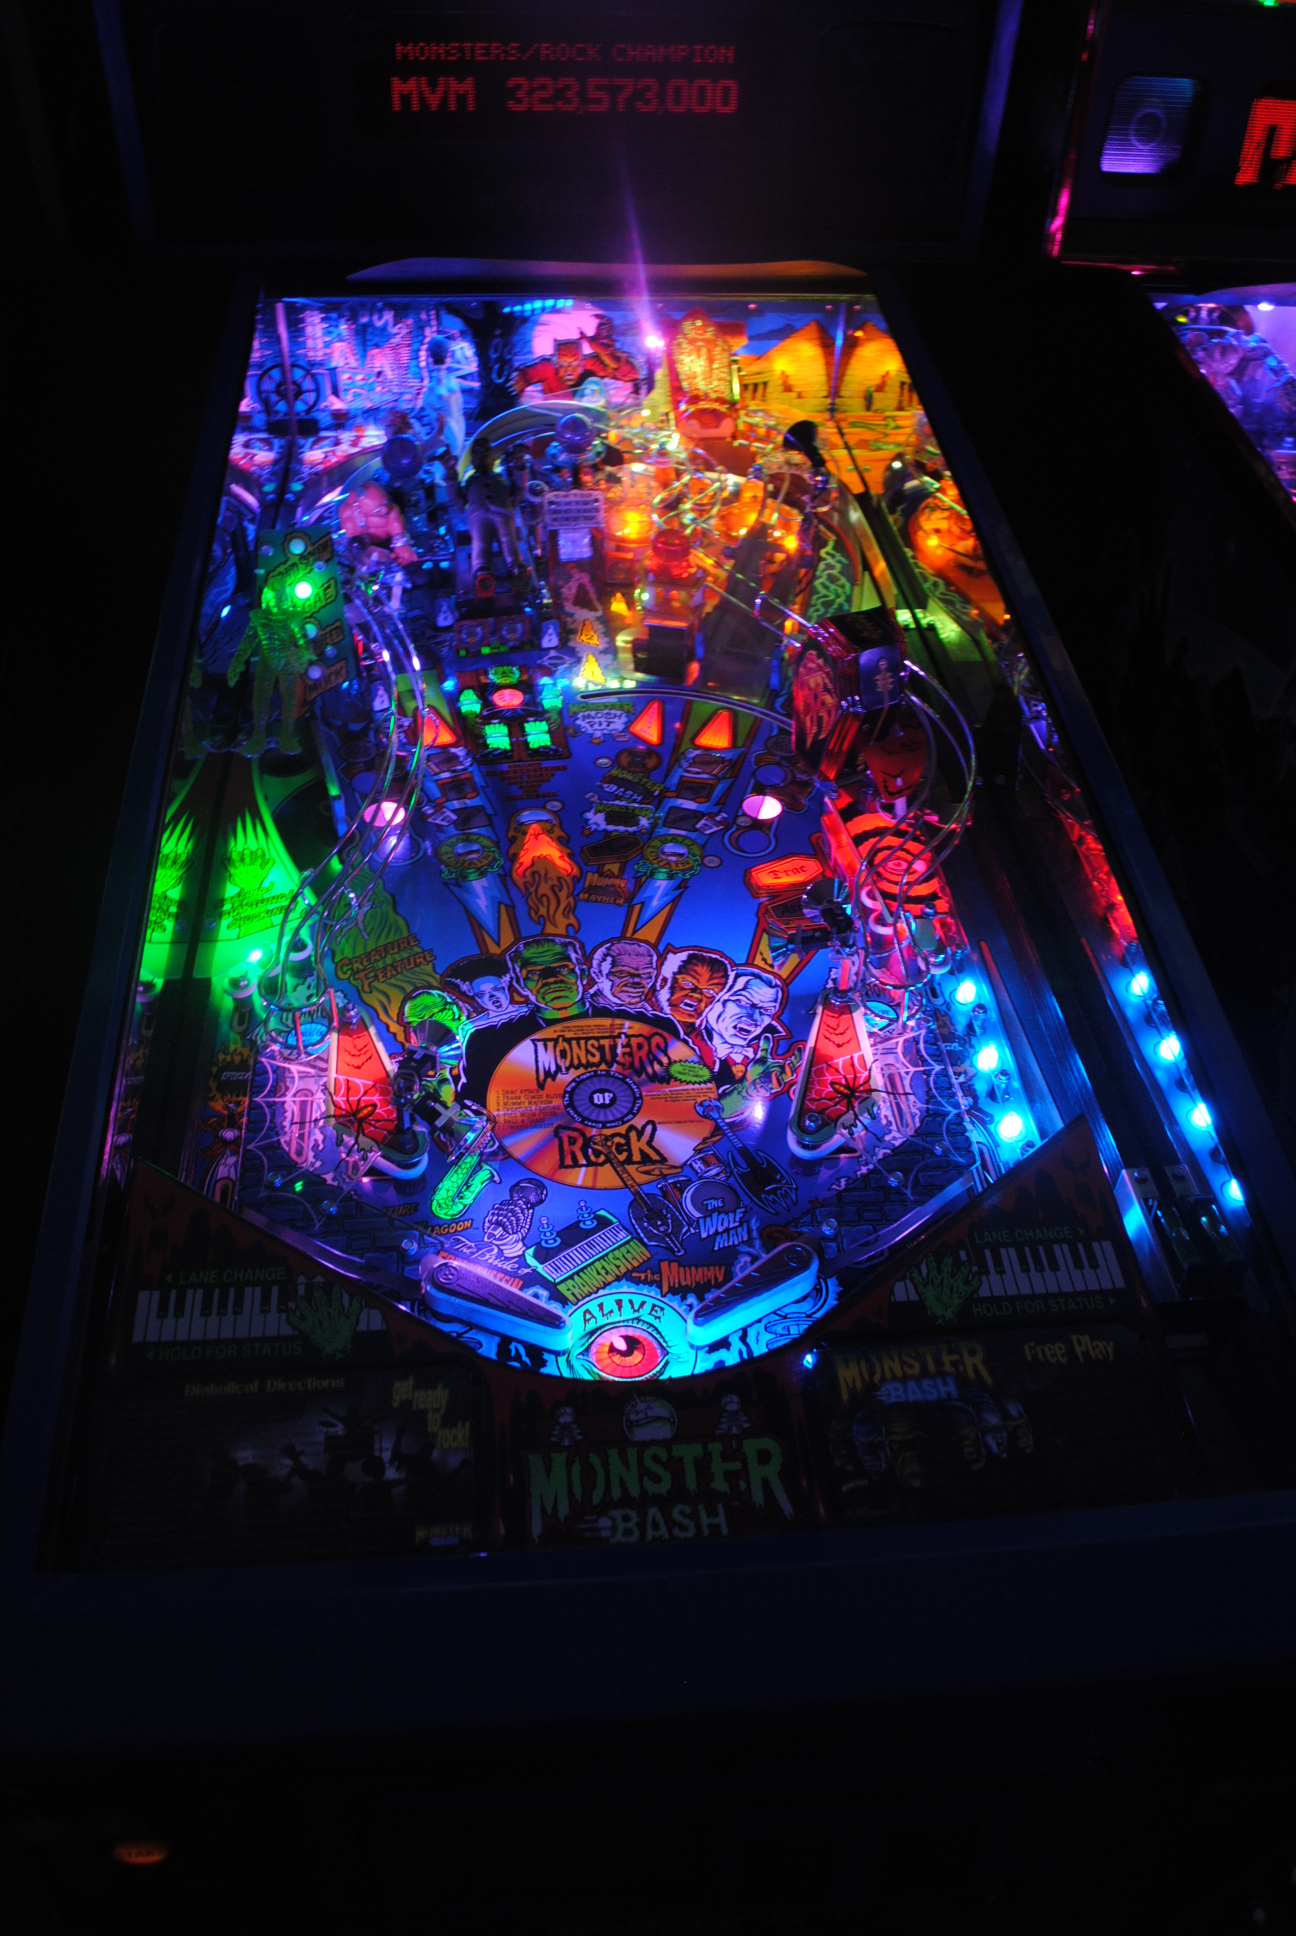 High quality monster bash pinball ultimate led lighting Ultimate lighting